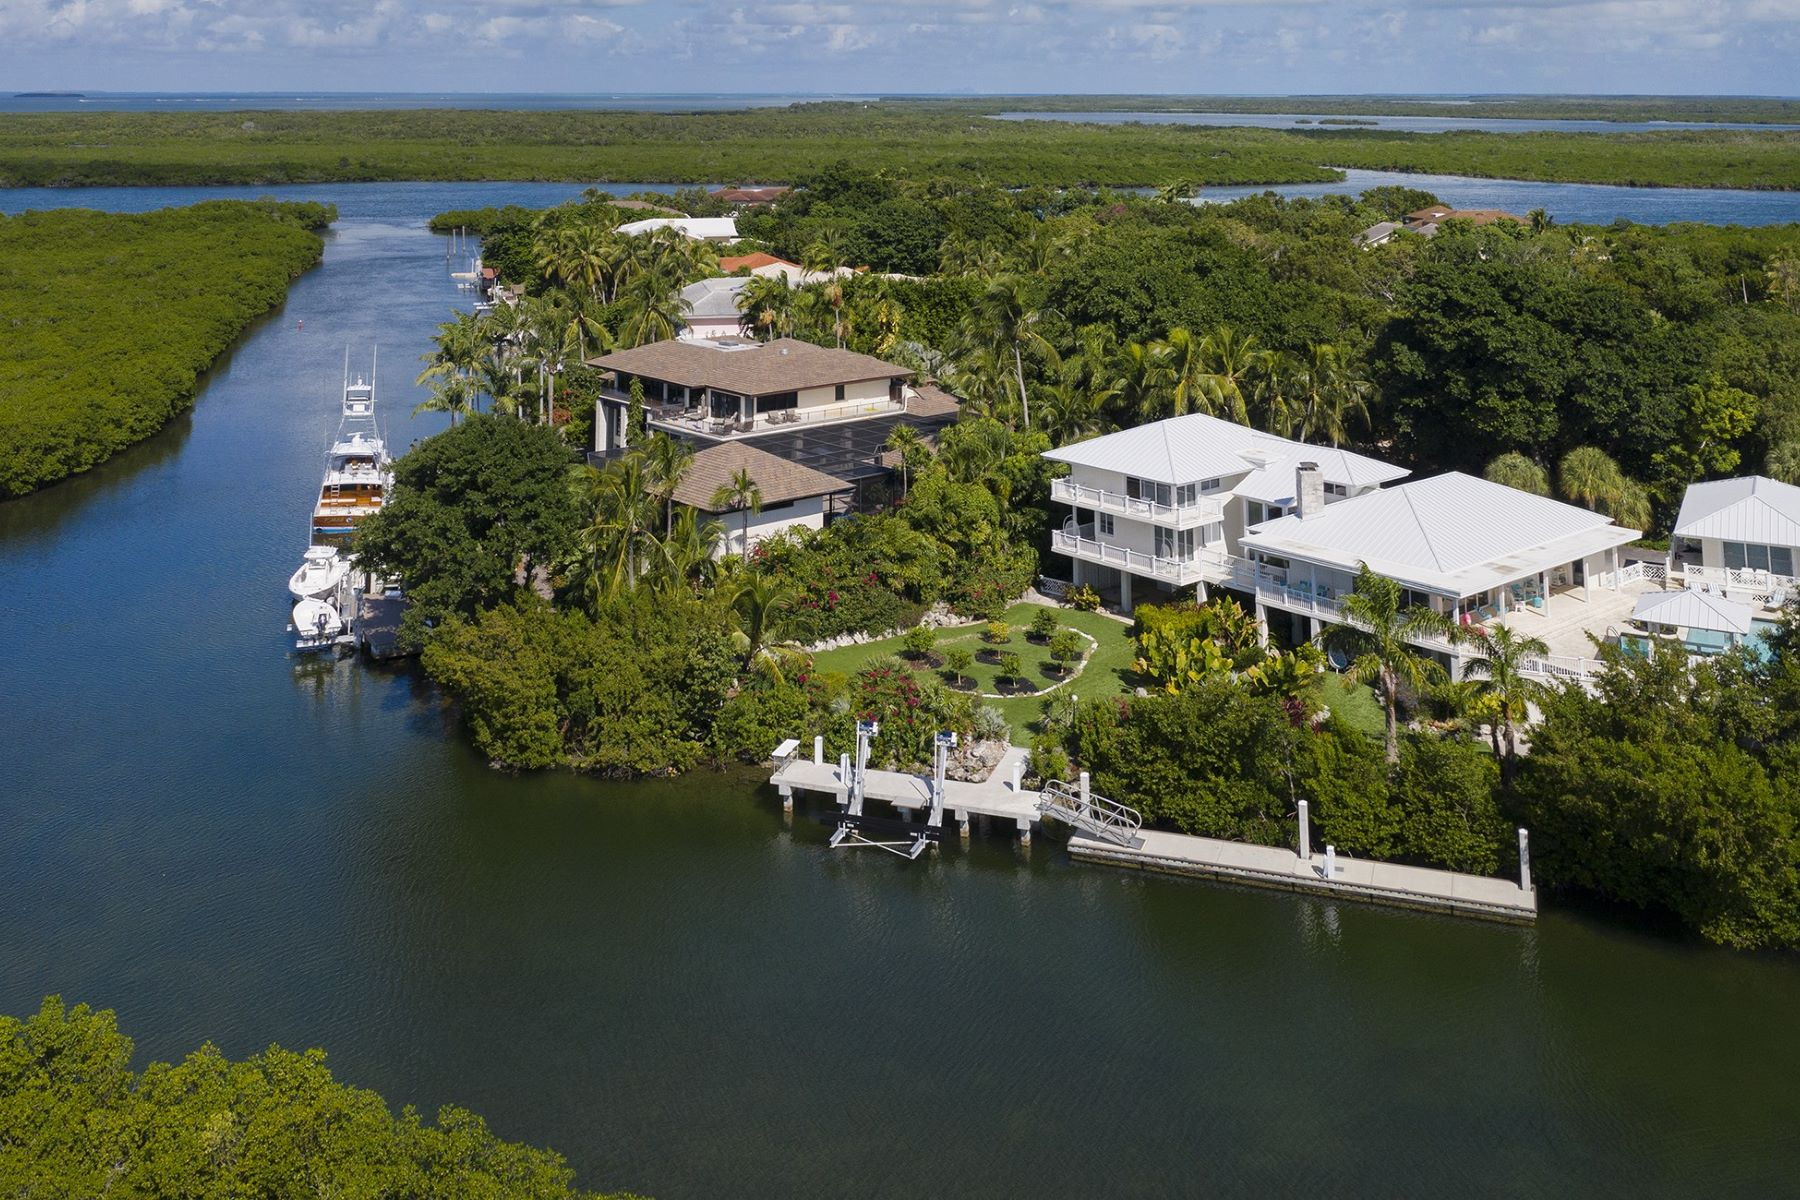 Single Family Homes for Sale at 28 Cardinal Lane, Key Largo, FL 28 Cardinal Lane Key Largo, Florida 33037 United States